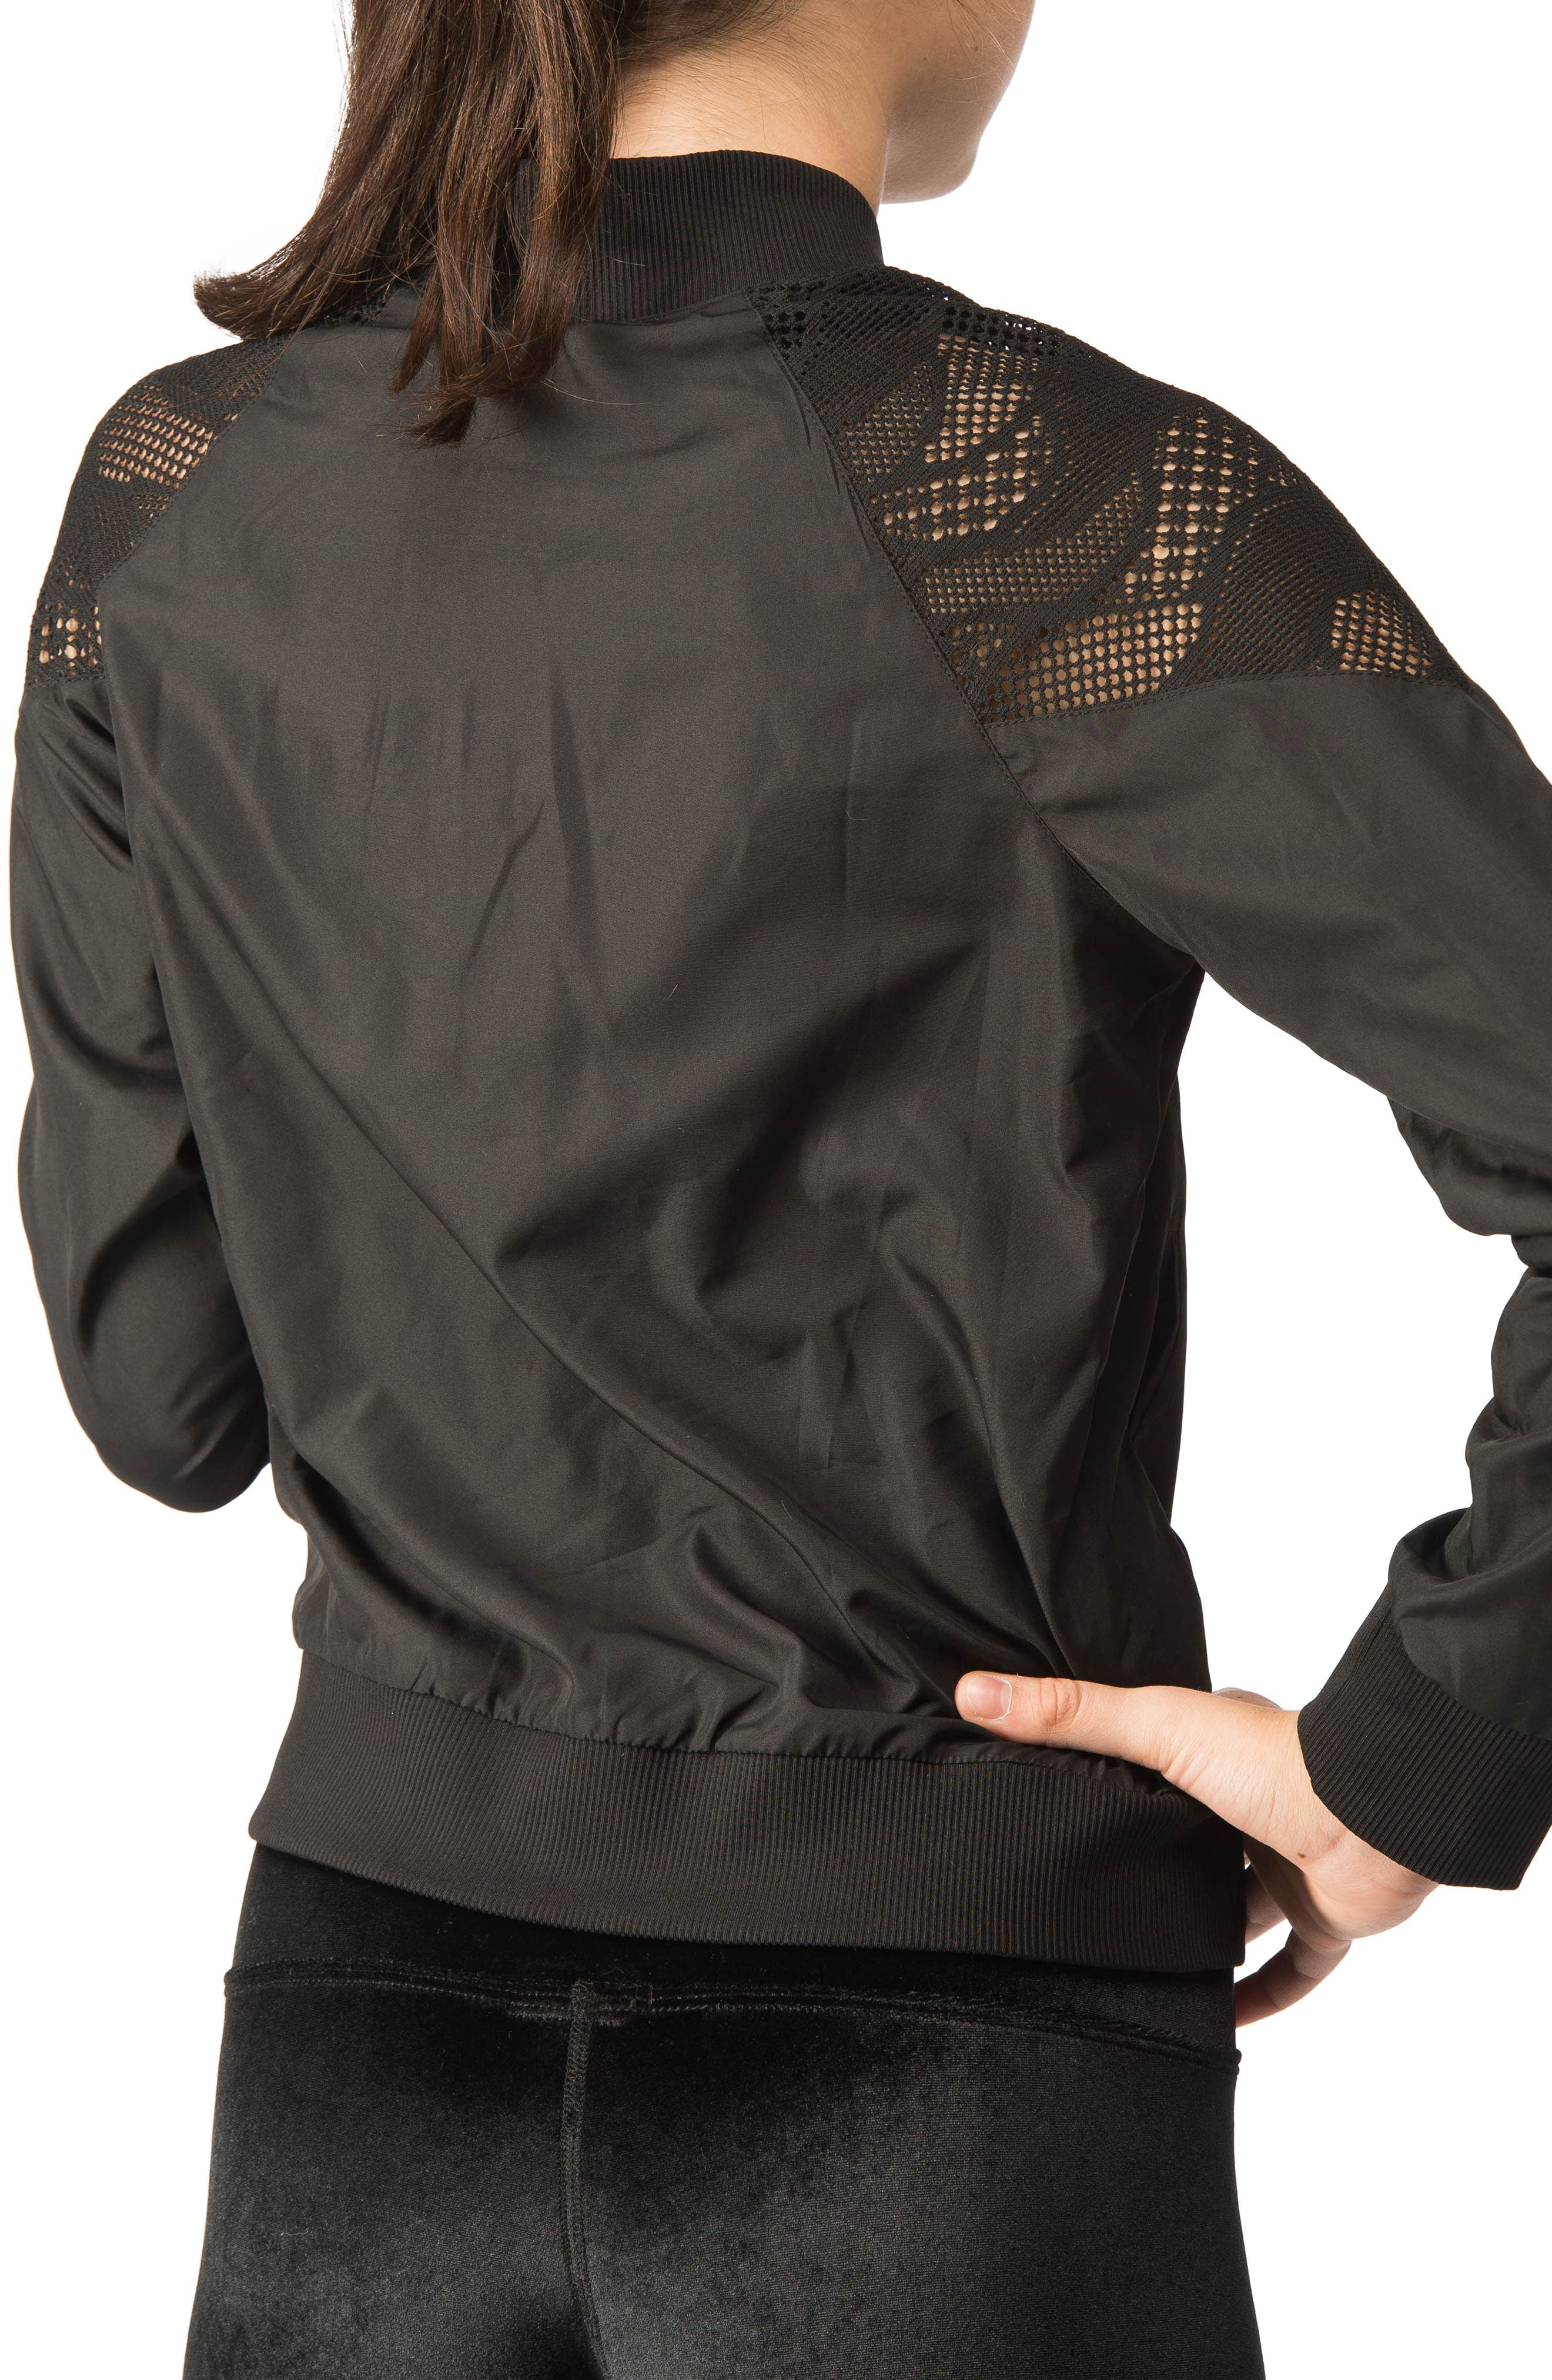 Lace Inset Bomber Jacket,                             Alternate thumbnail 3, color,                             001